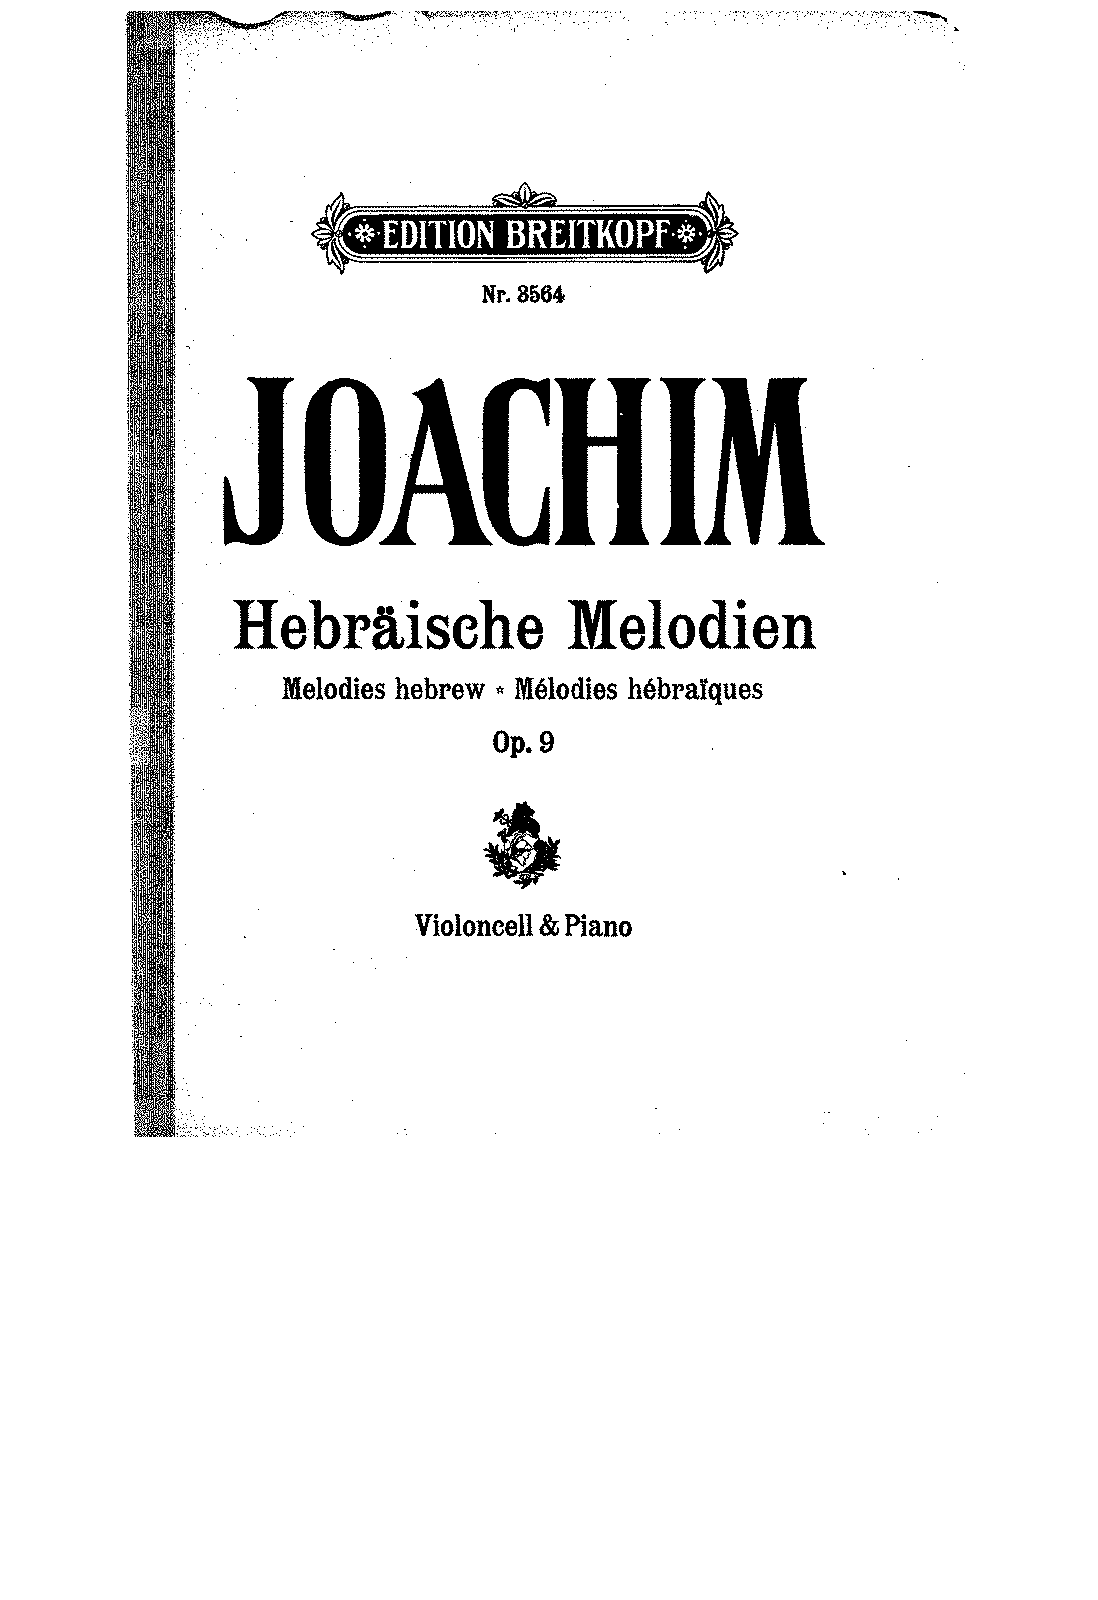 PMLP42624-Joachim - Hebraischen Melodien for Cello and Piano Op9 No1 (Roth) score.pdf